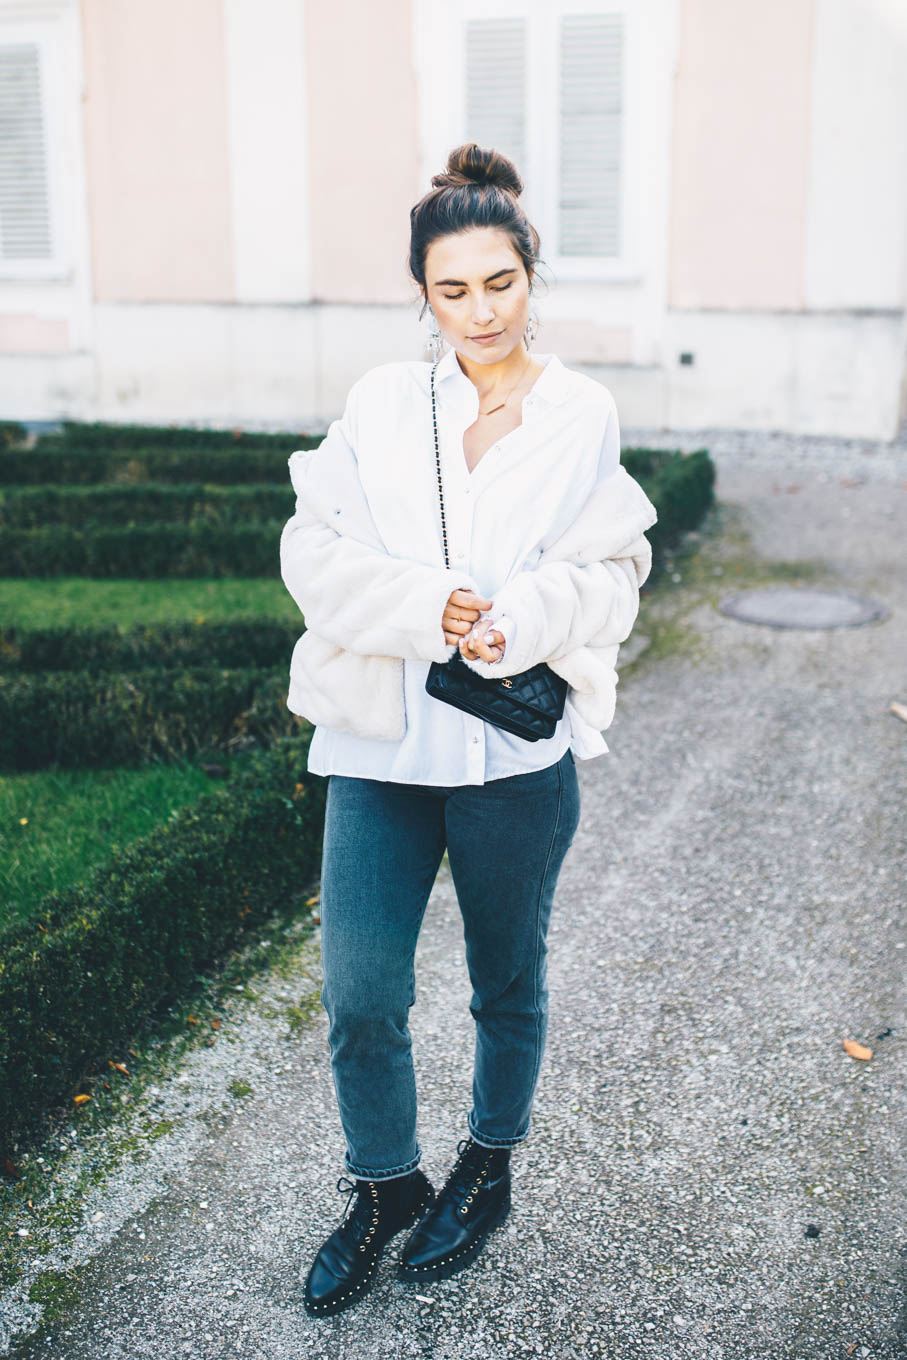 Outfit: Closed Pedal Pusher Jeans, Zara Blouse, Faux Fur Jacket, Maschalina Earrings, Leo Mathild Ring, Högl Shoes, Chanel WOC, Céline Baby Audrey Sunglasses   you rock my life